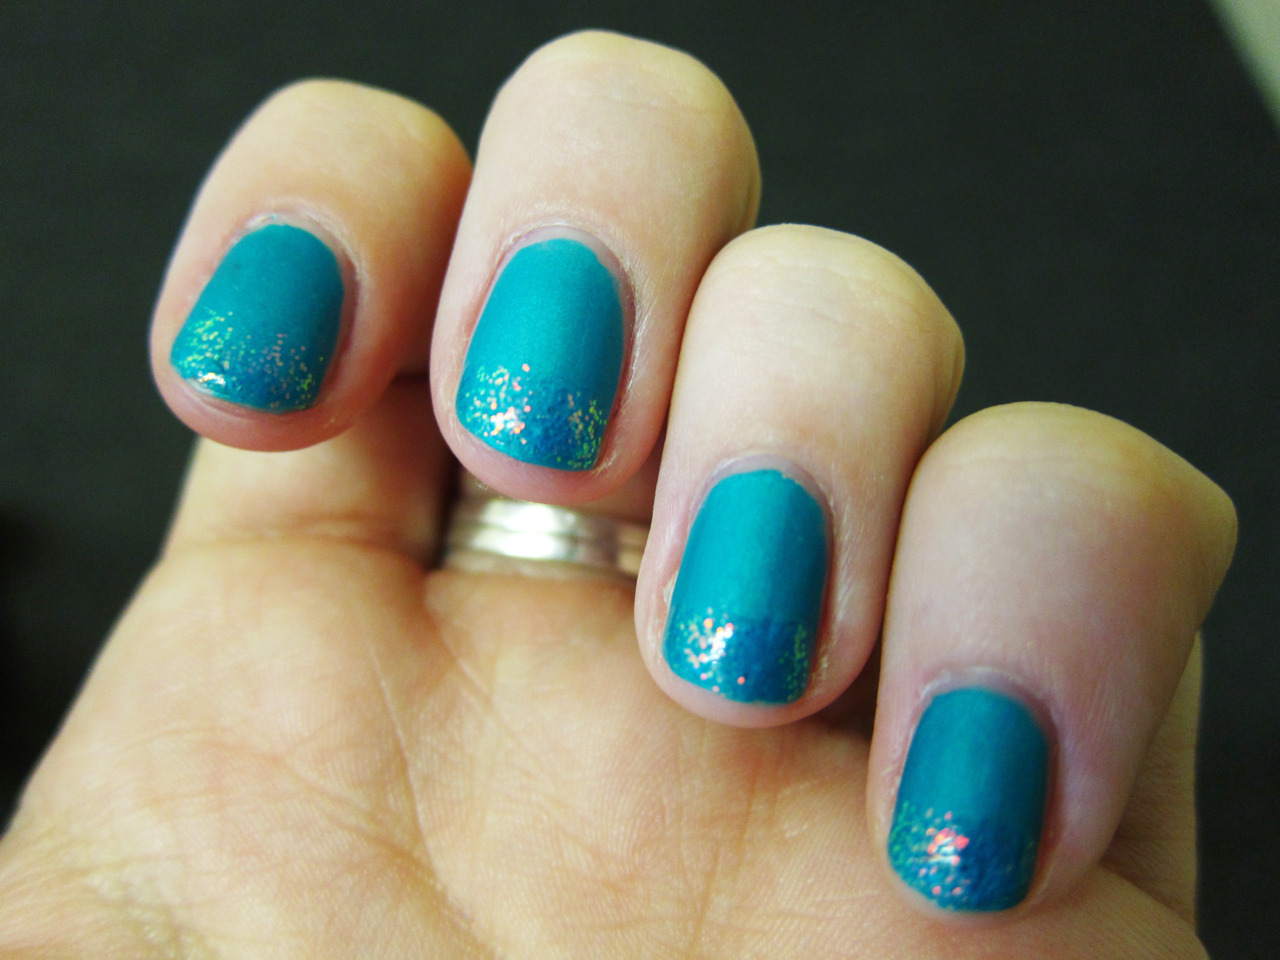 China Glaze - Turned Up TurquoiseKleancolor - Chunky Holo Teal